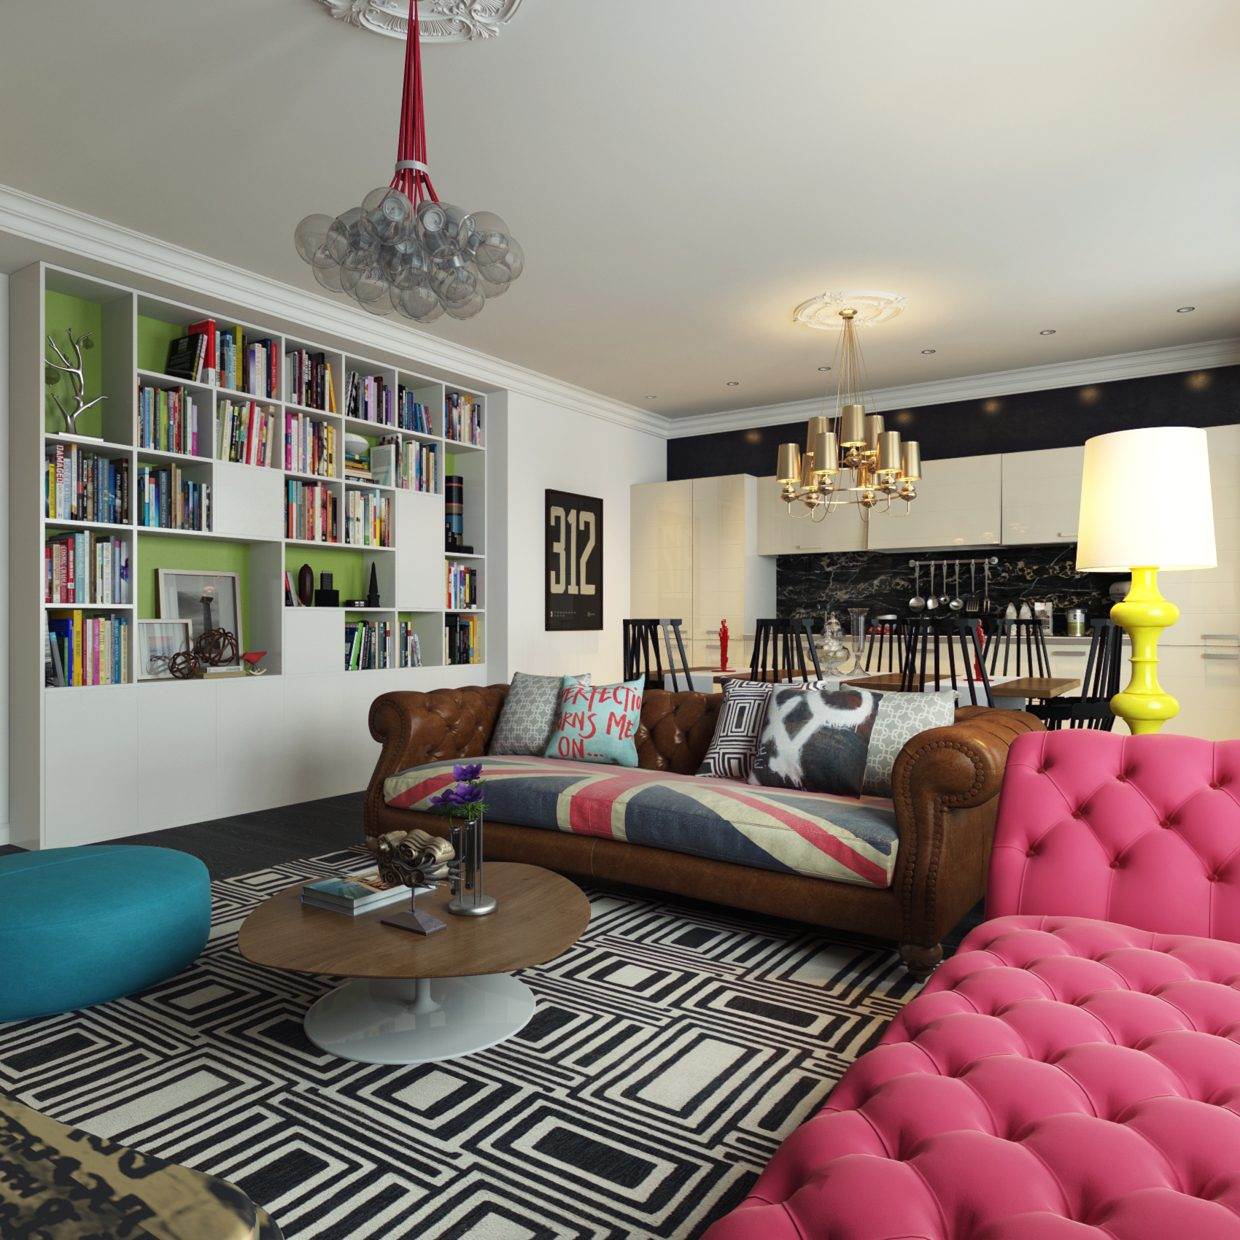 Home Design Color Ideas: Modern Pop Art Style Apartment